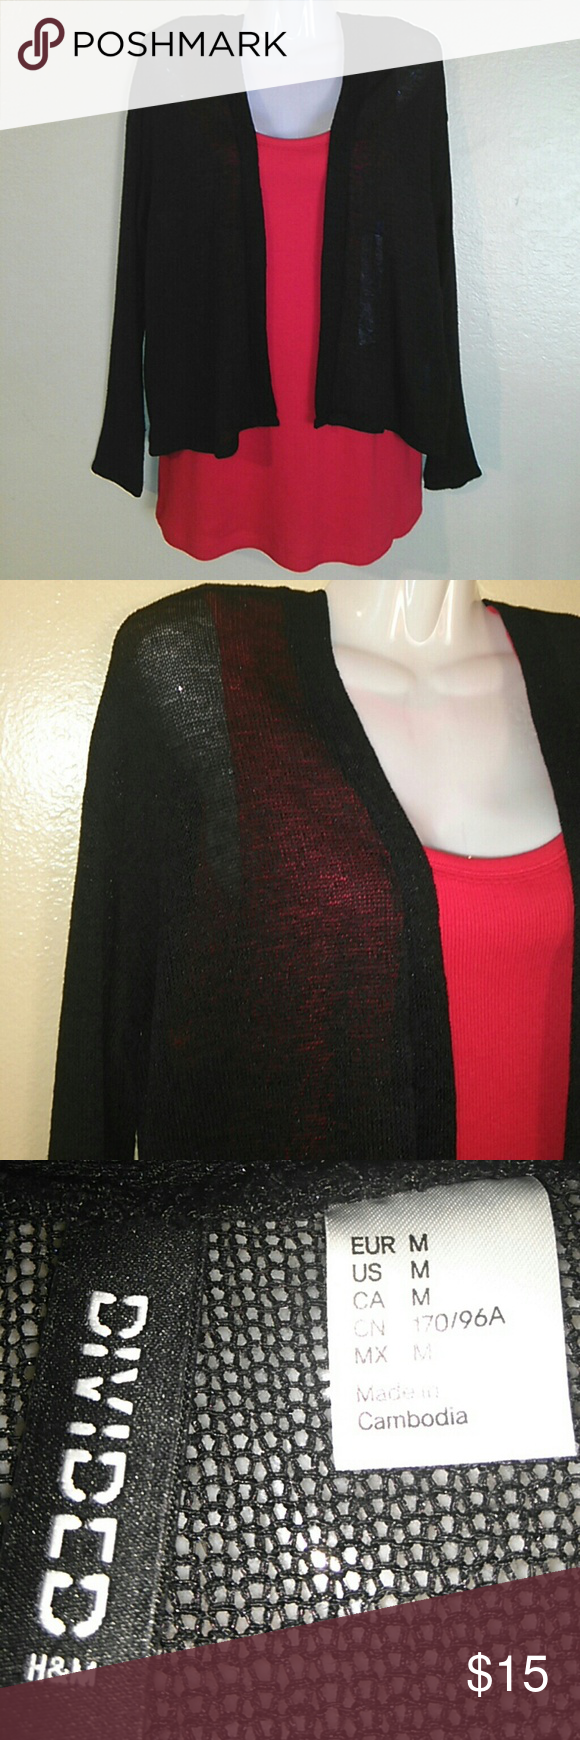 DIVIDED DRESSY SHEER CARDIGAN SIZE MEDIUM COLOR BLACK LONG SLEEVE H&M Sweaters Cardigans